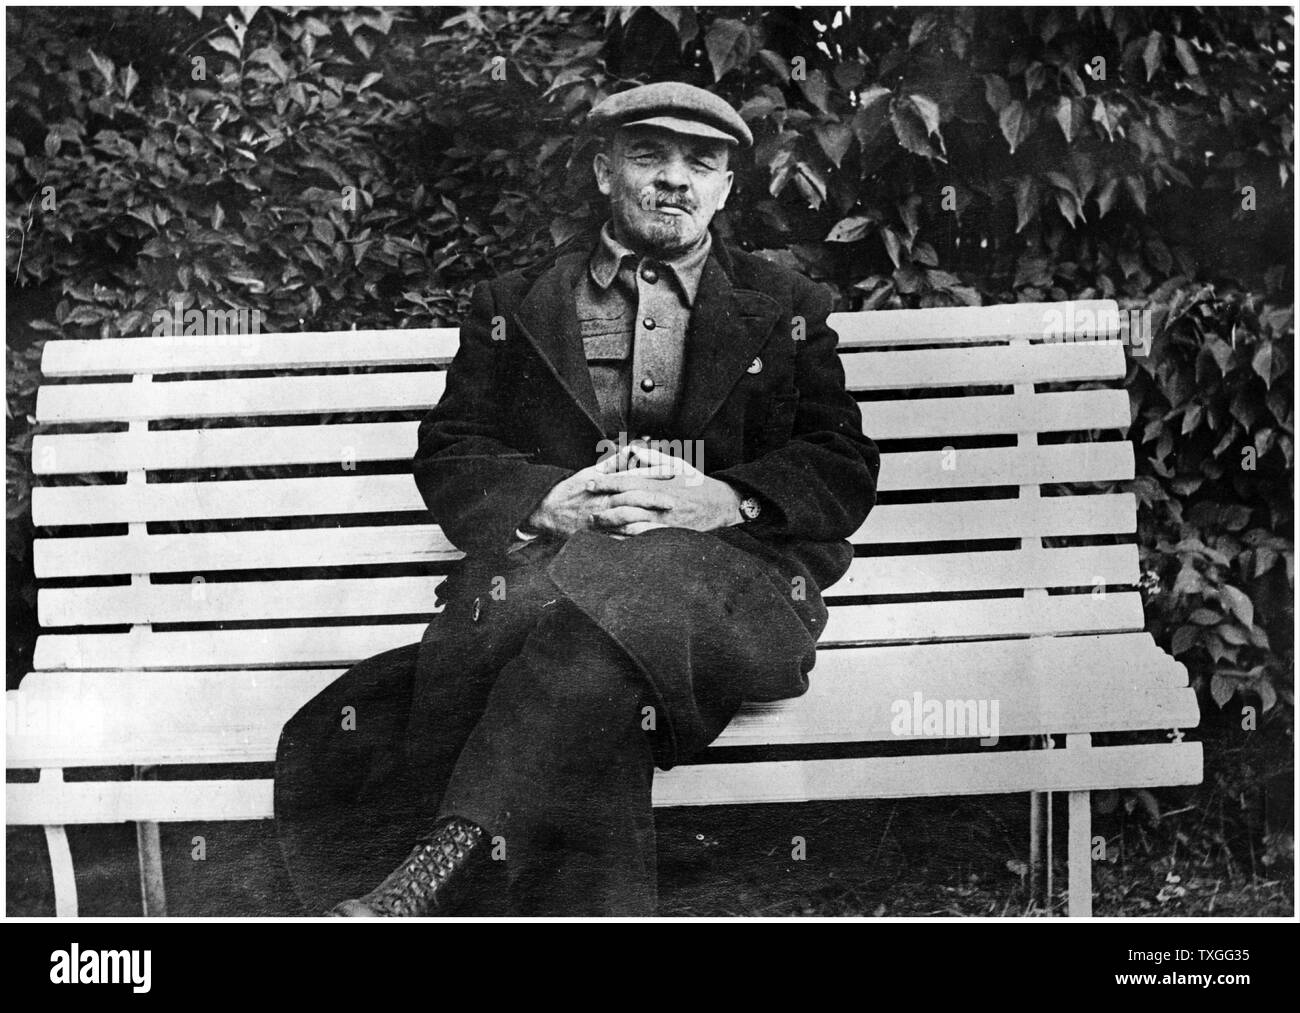 Vladimir Lenin seated on a bench in his garden at his home - Stock Image